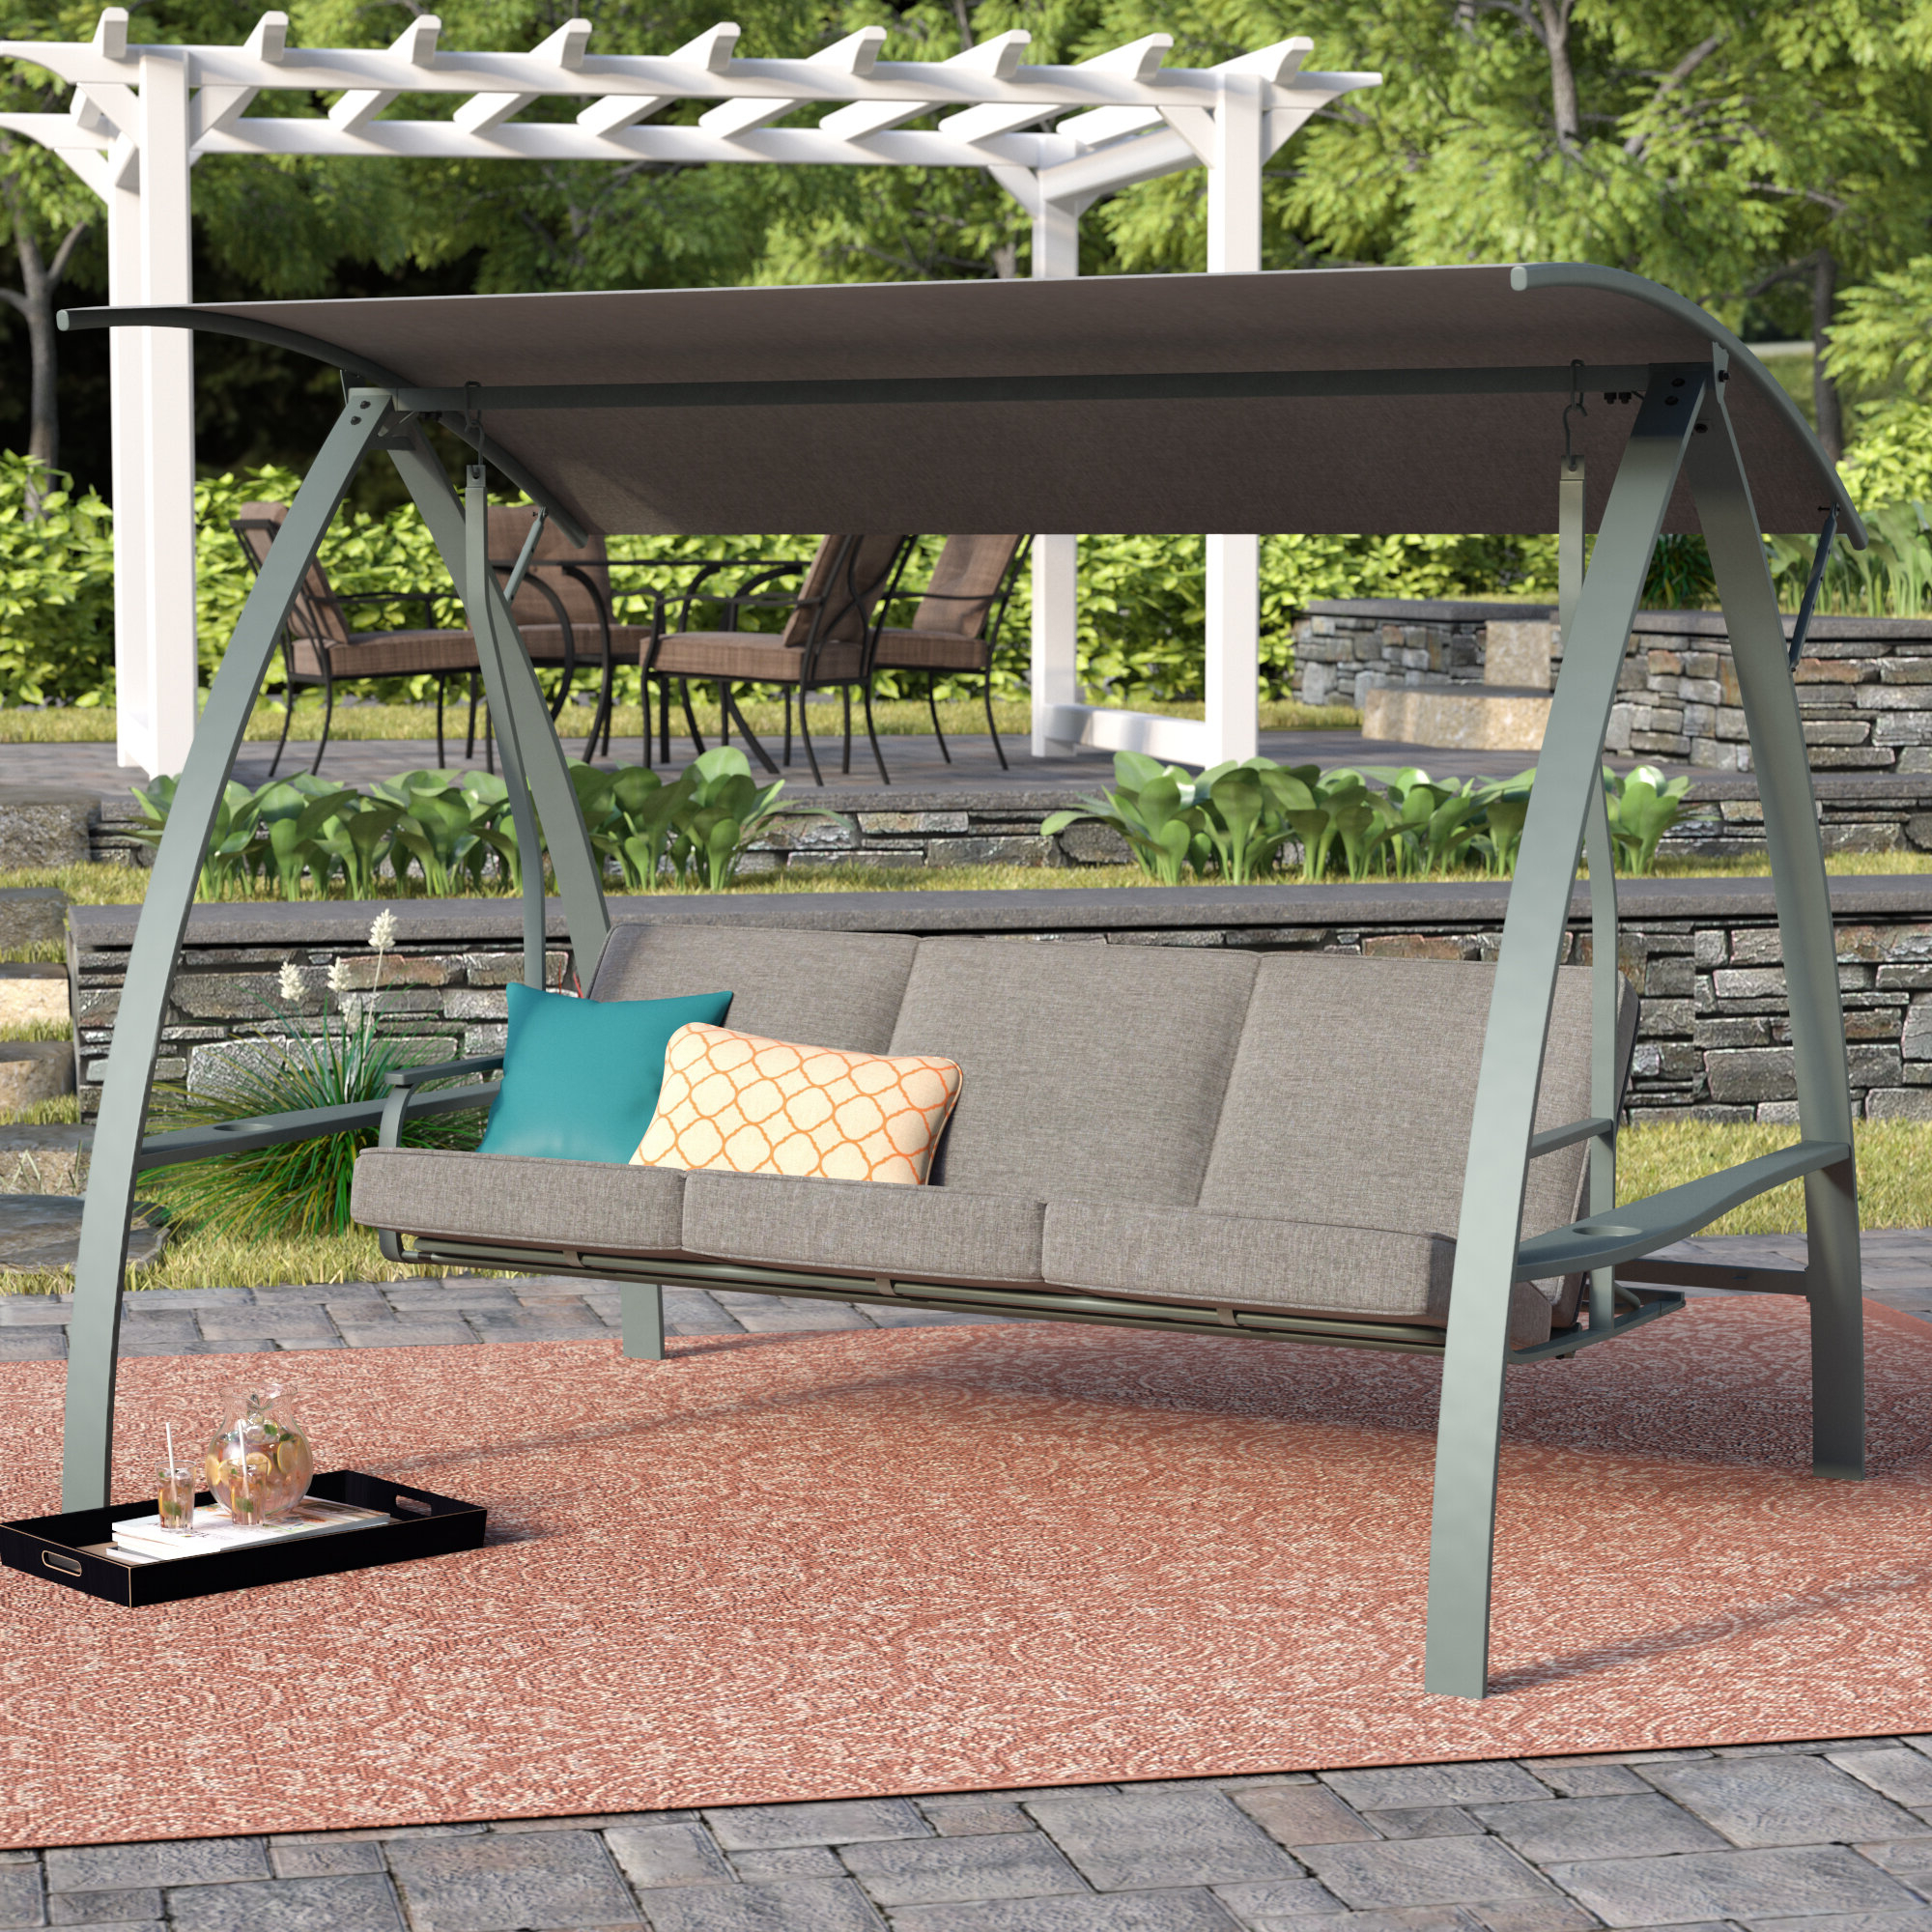 Recent Andover Mills Marquette 3 Seat Daybed Porch Swing With Stand With Day Bed Porch Swings (View 10 of 30)